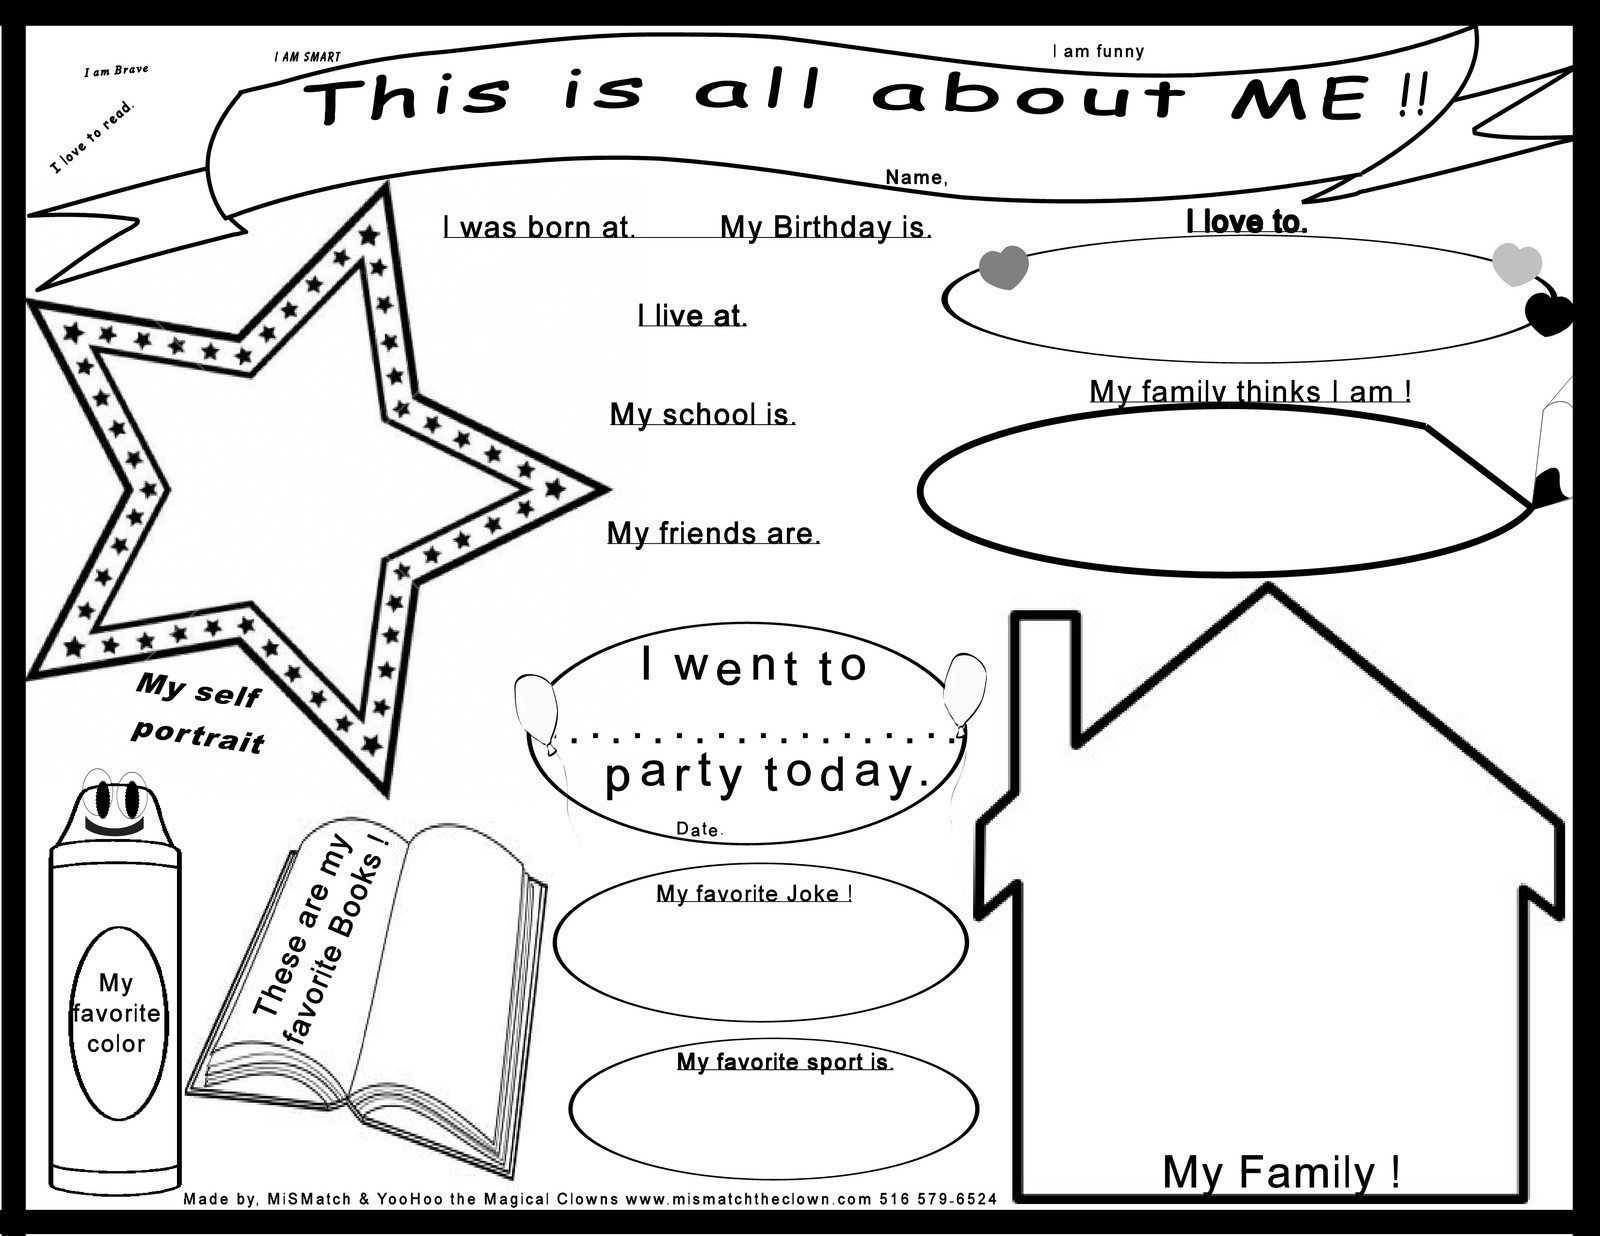 Kids All About Me Poster Print Out How To Make A Papercraft Other On Cut Out Keep